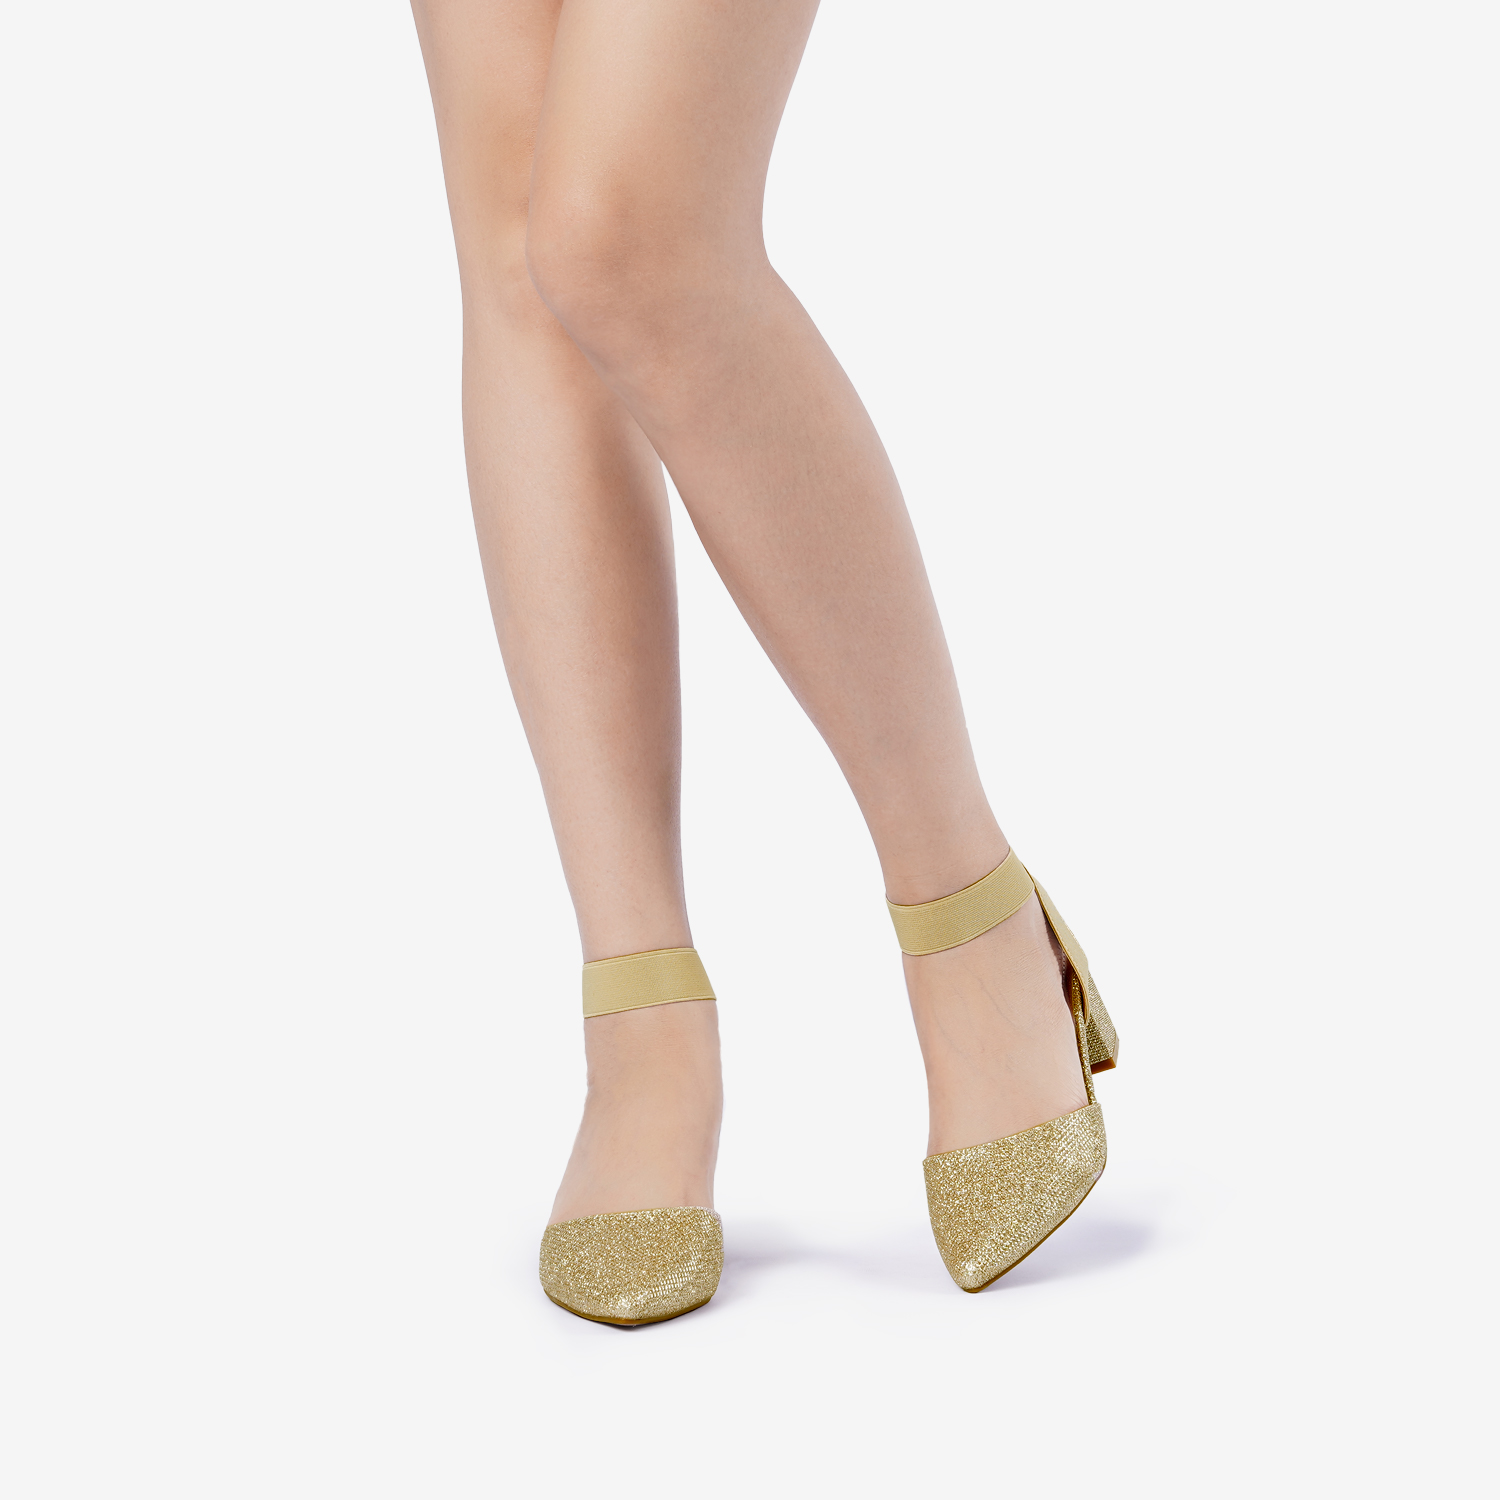 thumbnail 31 - Women-039-s-Elastic-Ankle-Strap-Pointed-Toe-Pump-Shoes-Low-Chunky-Heel-Dress-Pumps